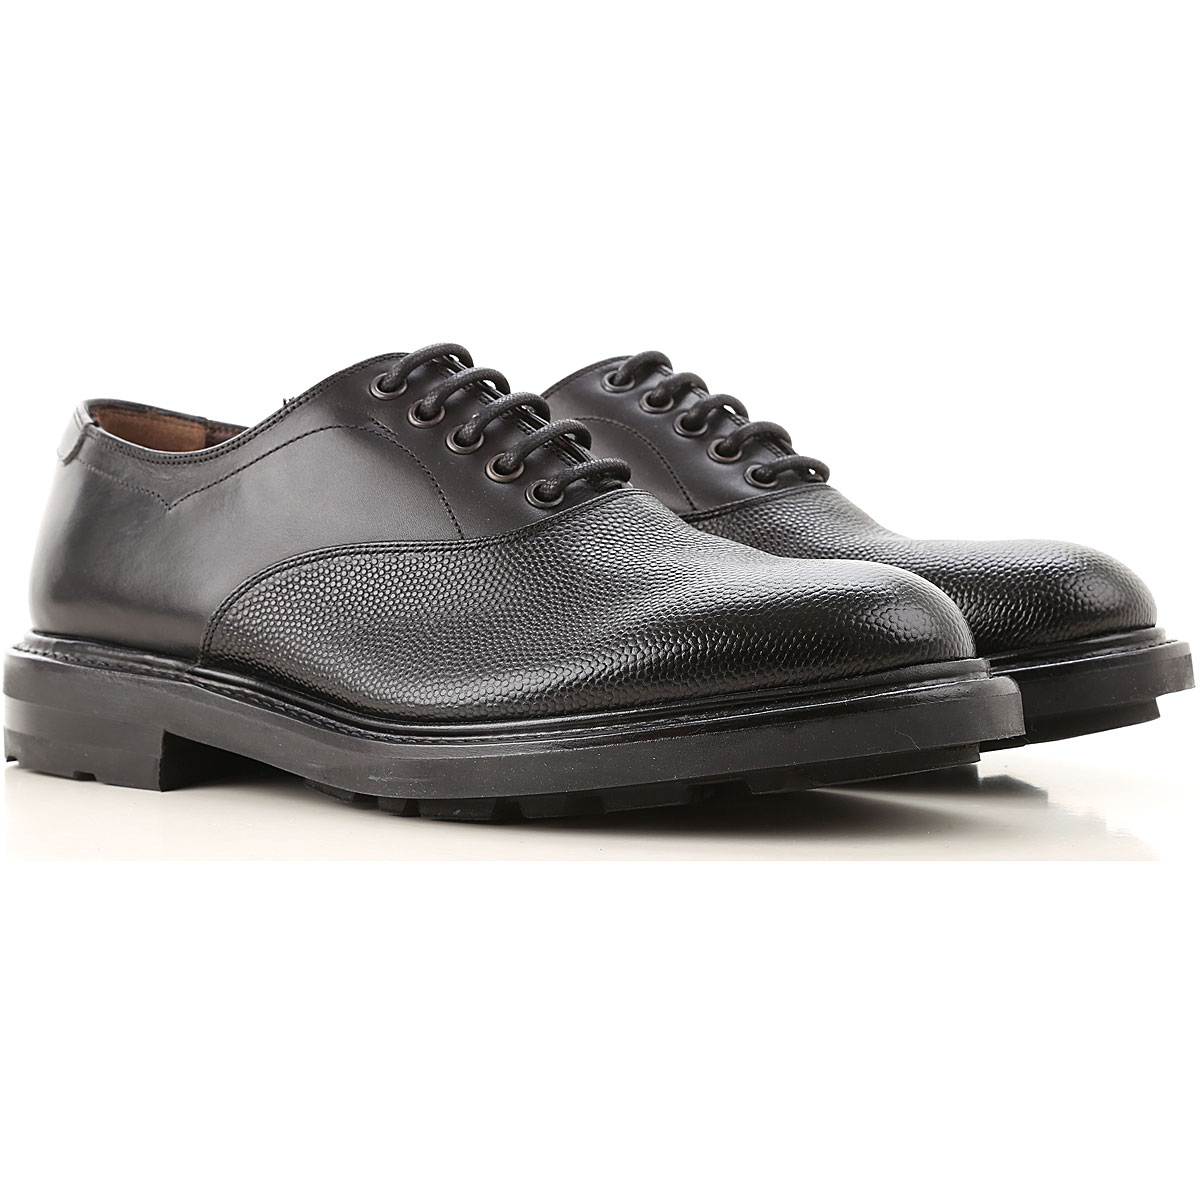 Salvatore Ferragamo Lace Up Shoes for Men Oxfords, Derbies and Brogues On Sale, Black, Leather, 2019, 7 9